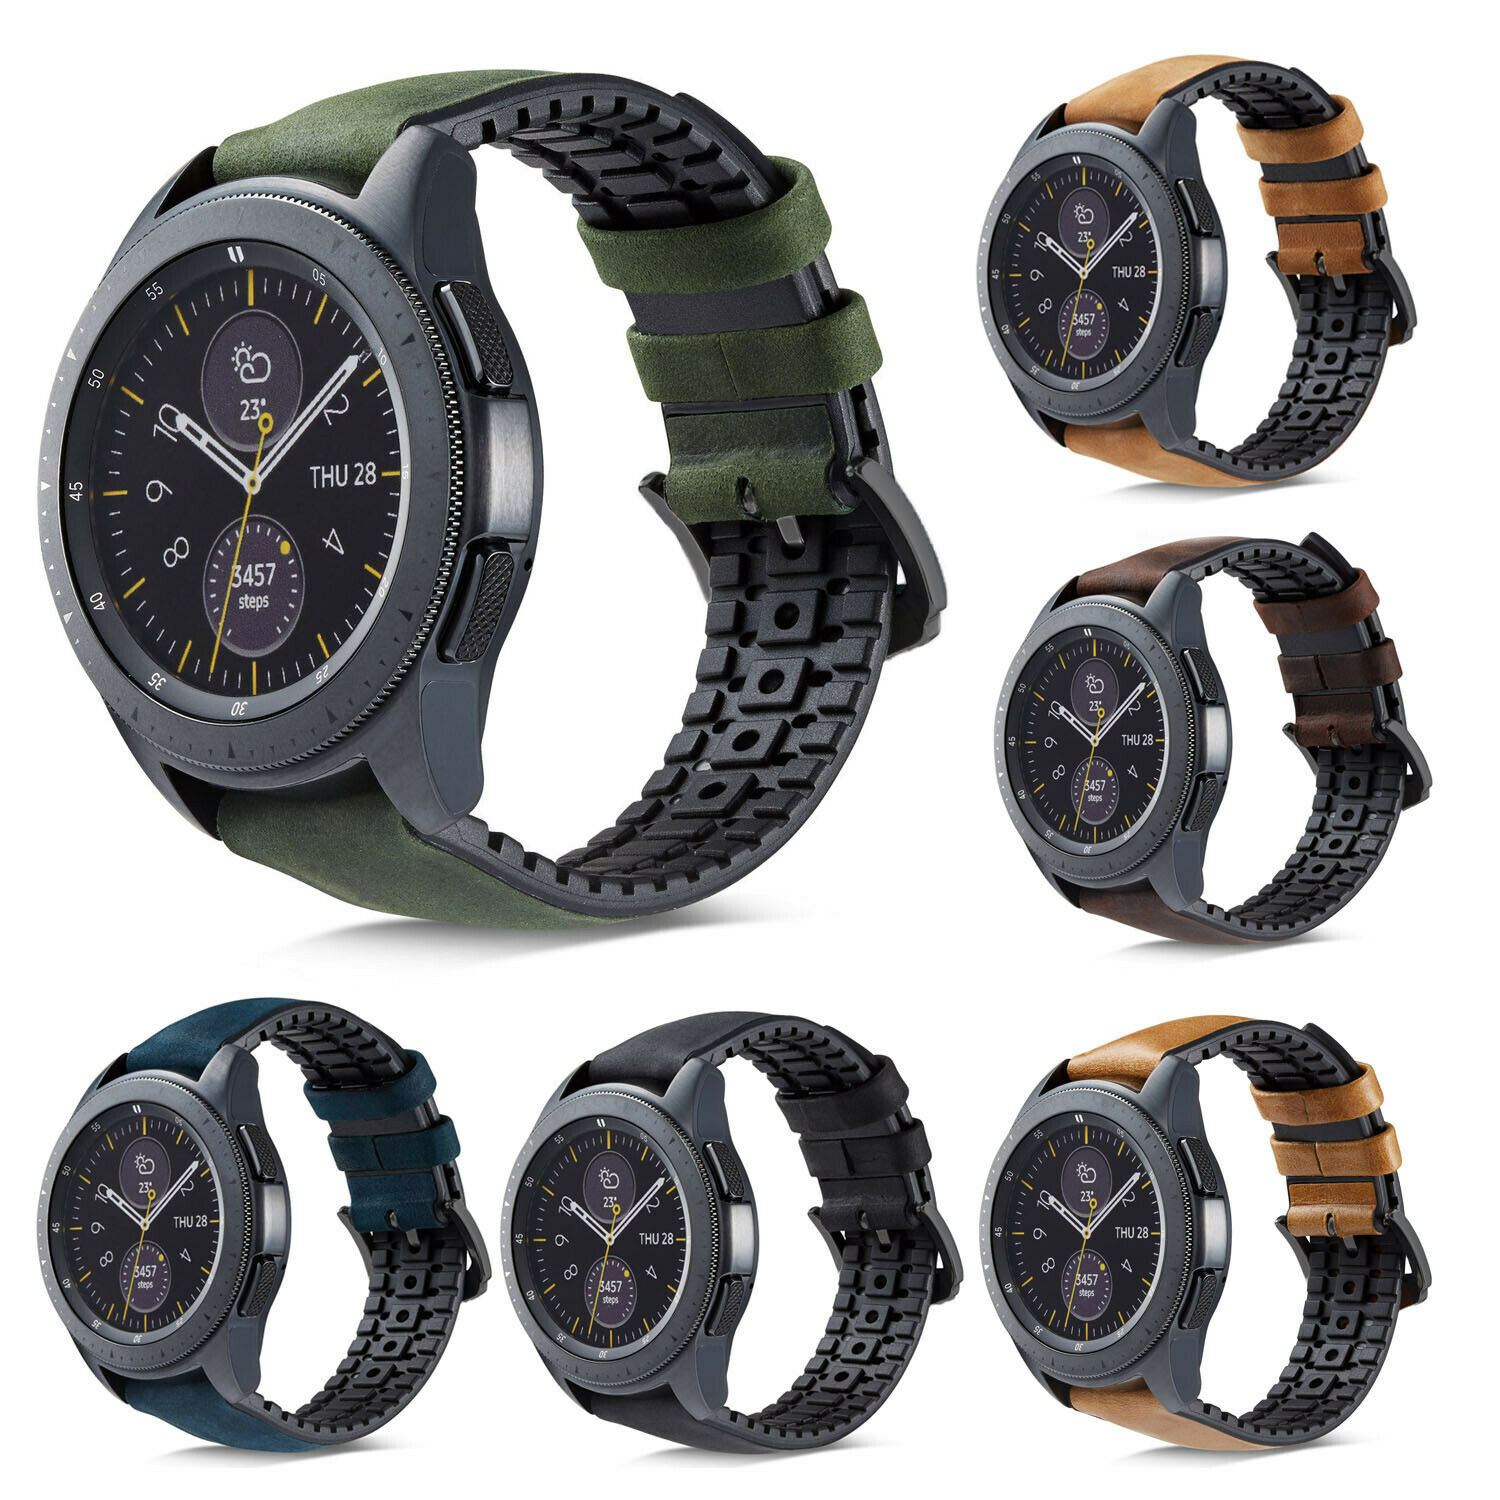 Silicone Real Leather Watchband 22mm For Samsung Galaxy Watch 46mm Band Wrist Strap For Samsung S3 Frontier/Classic Watch Strap